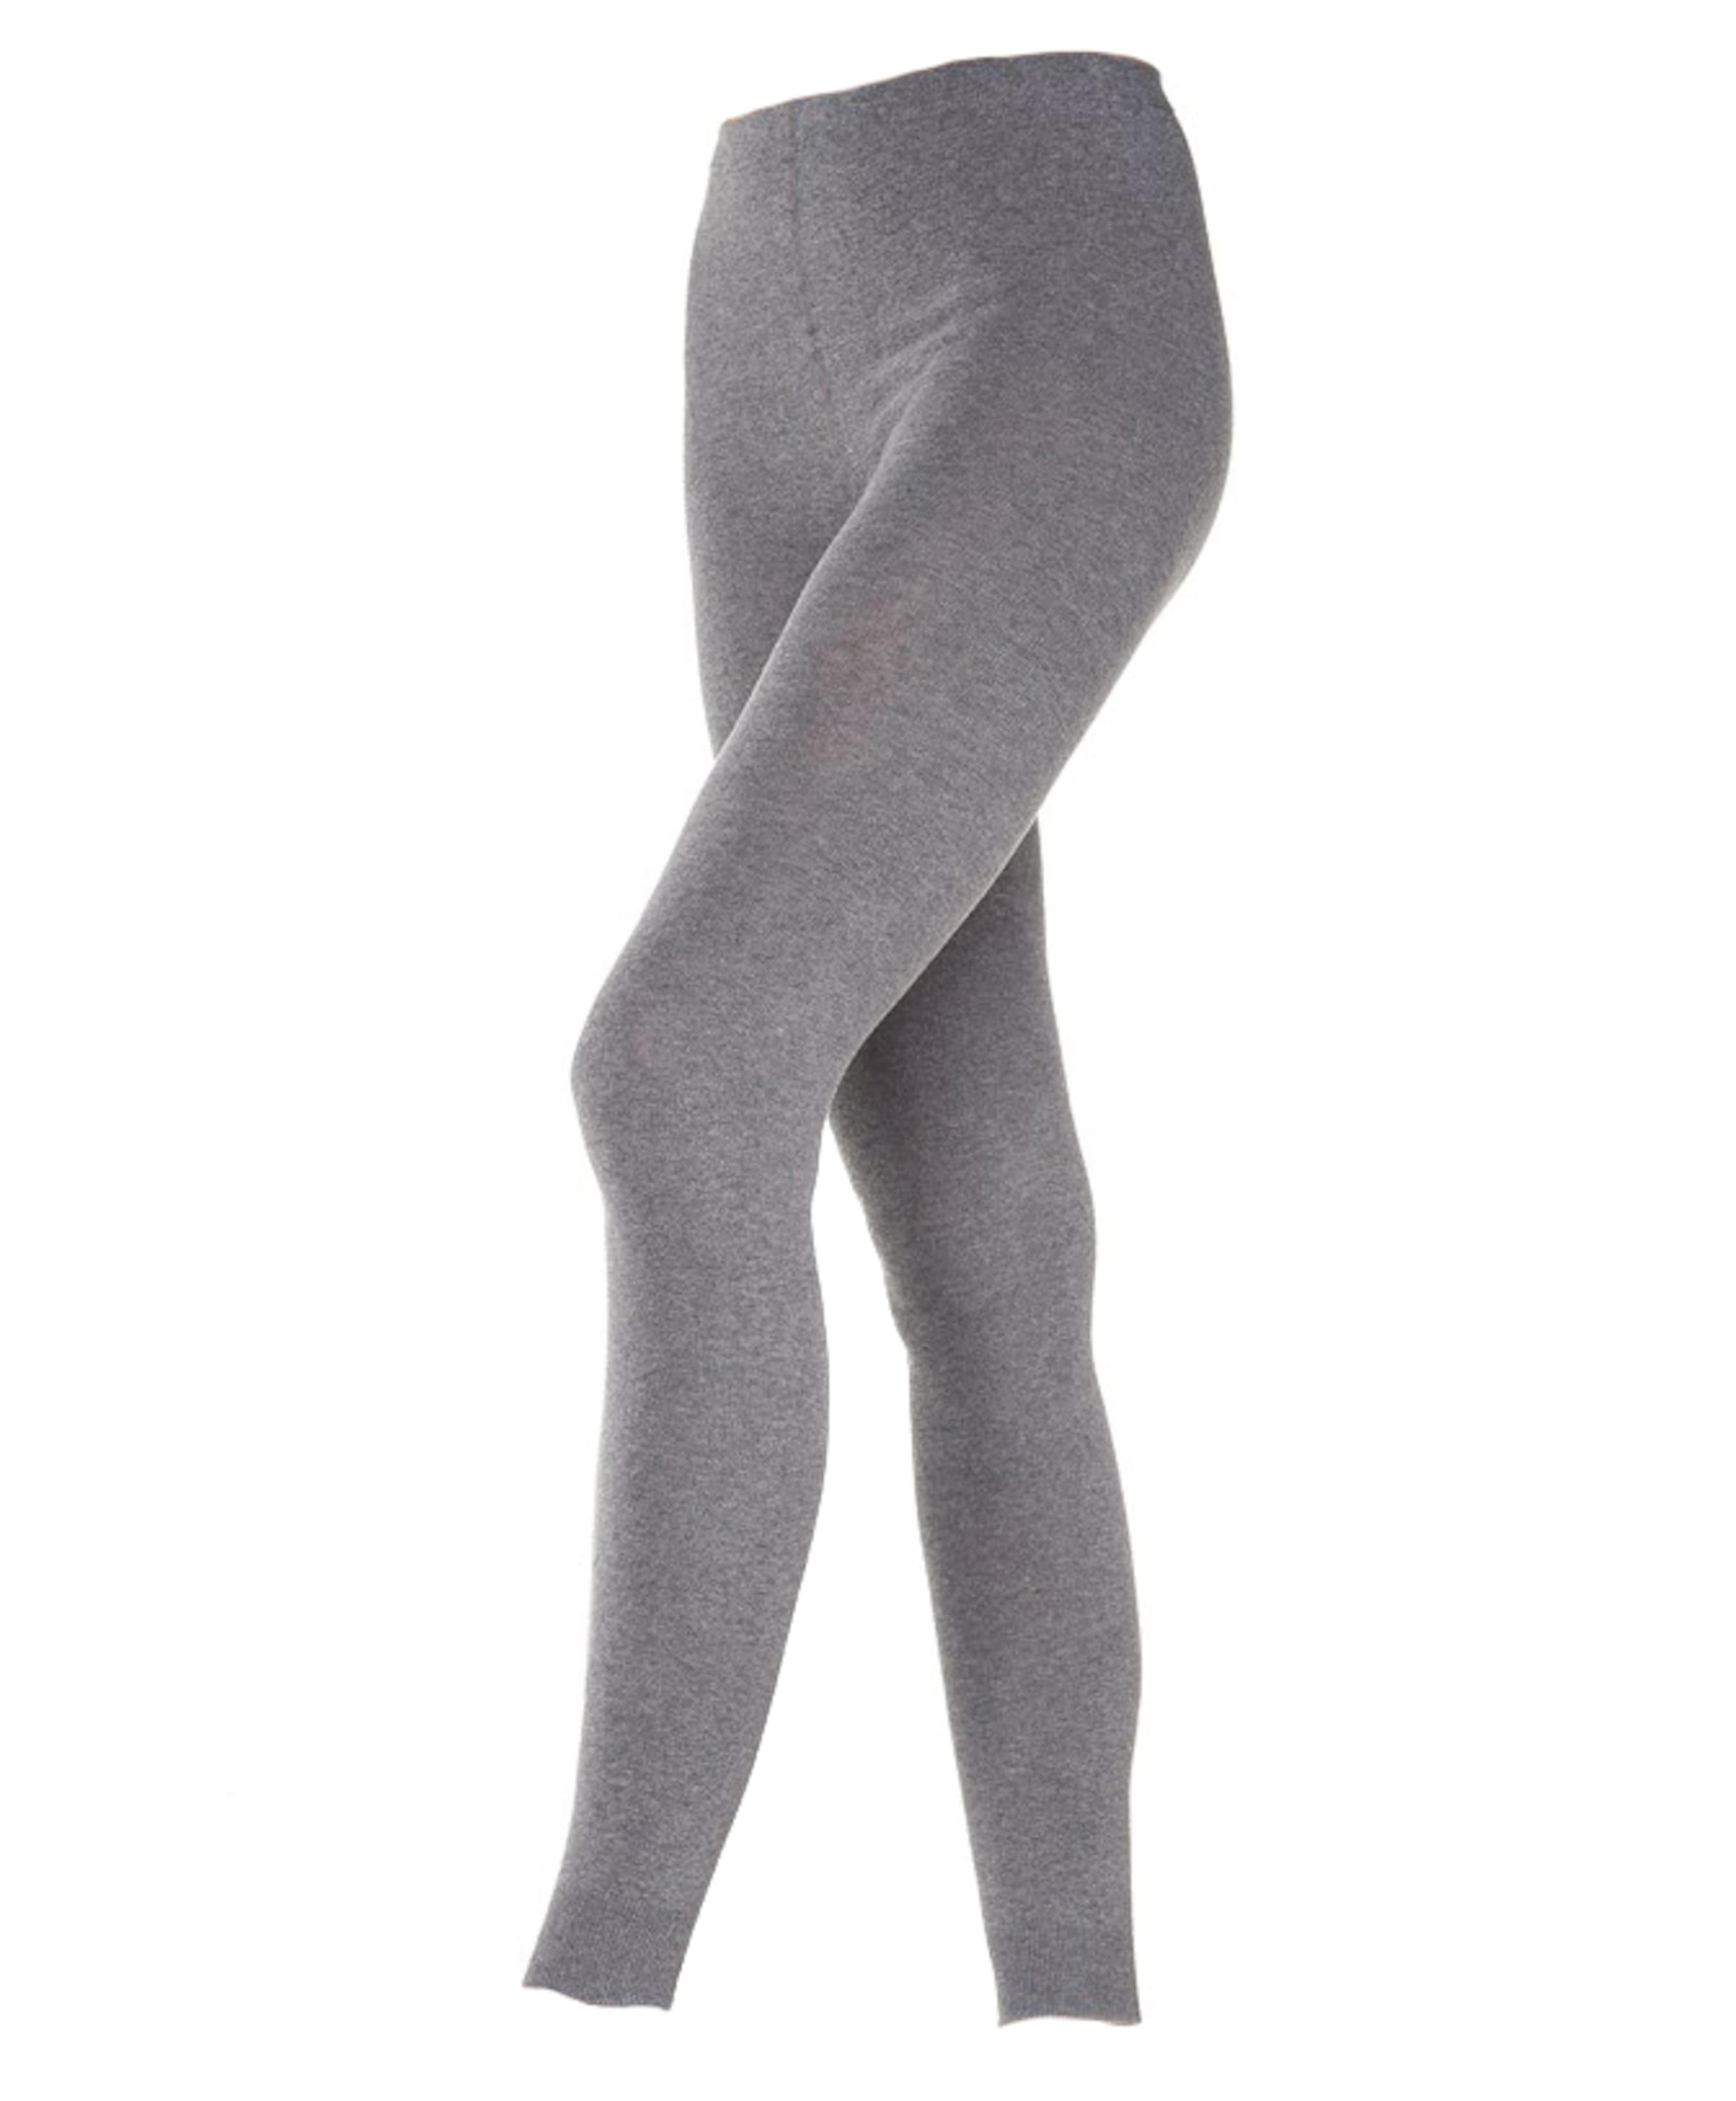 In Graumeliert Leggings Lavana Lavana Lavana Graumeliert Lavana In Leggings In In Graumeliert Leggings Leggings jqGMLSUVpz